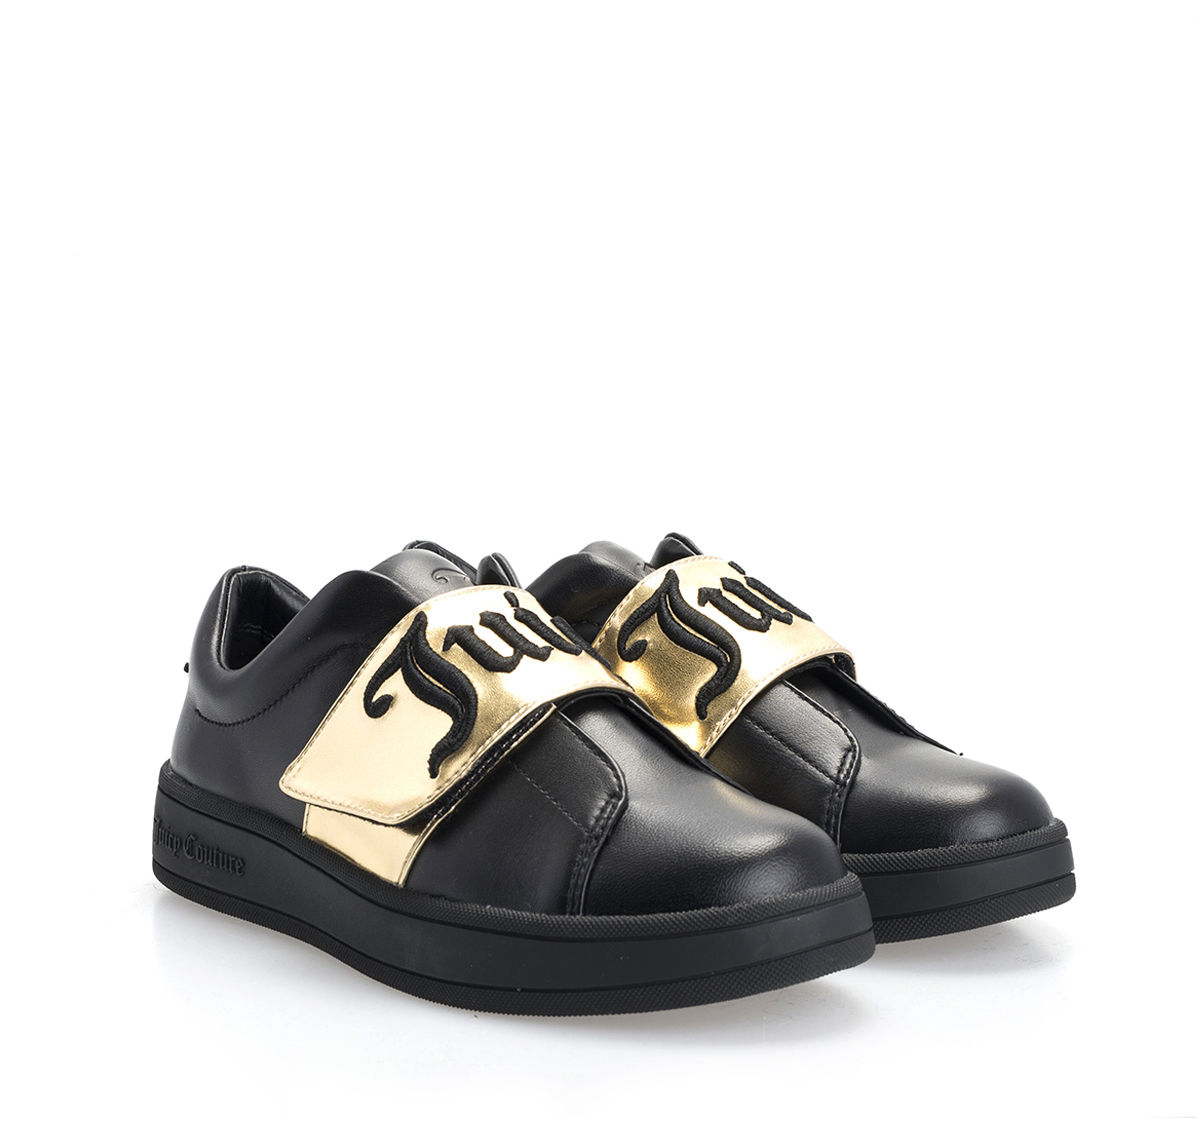 """Juicy Couture Juicy Couture Sneakersy """"Cynthia"""""""